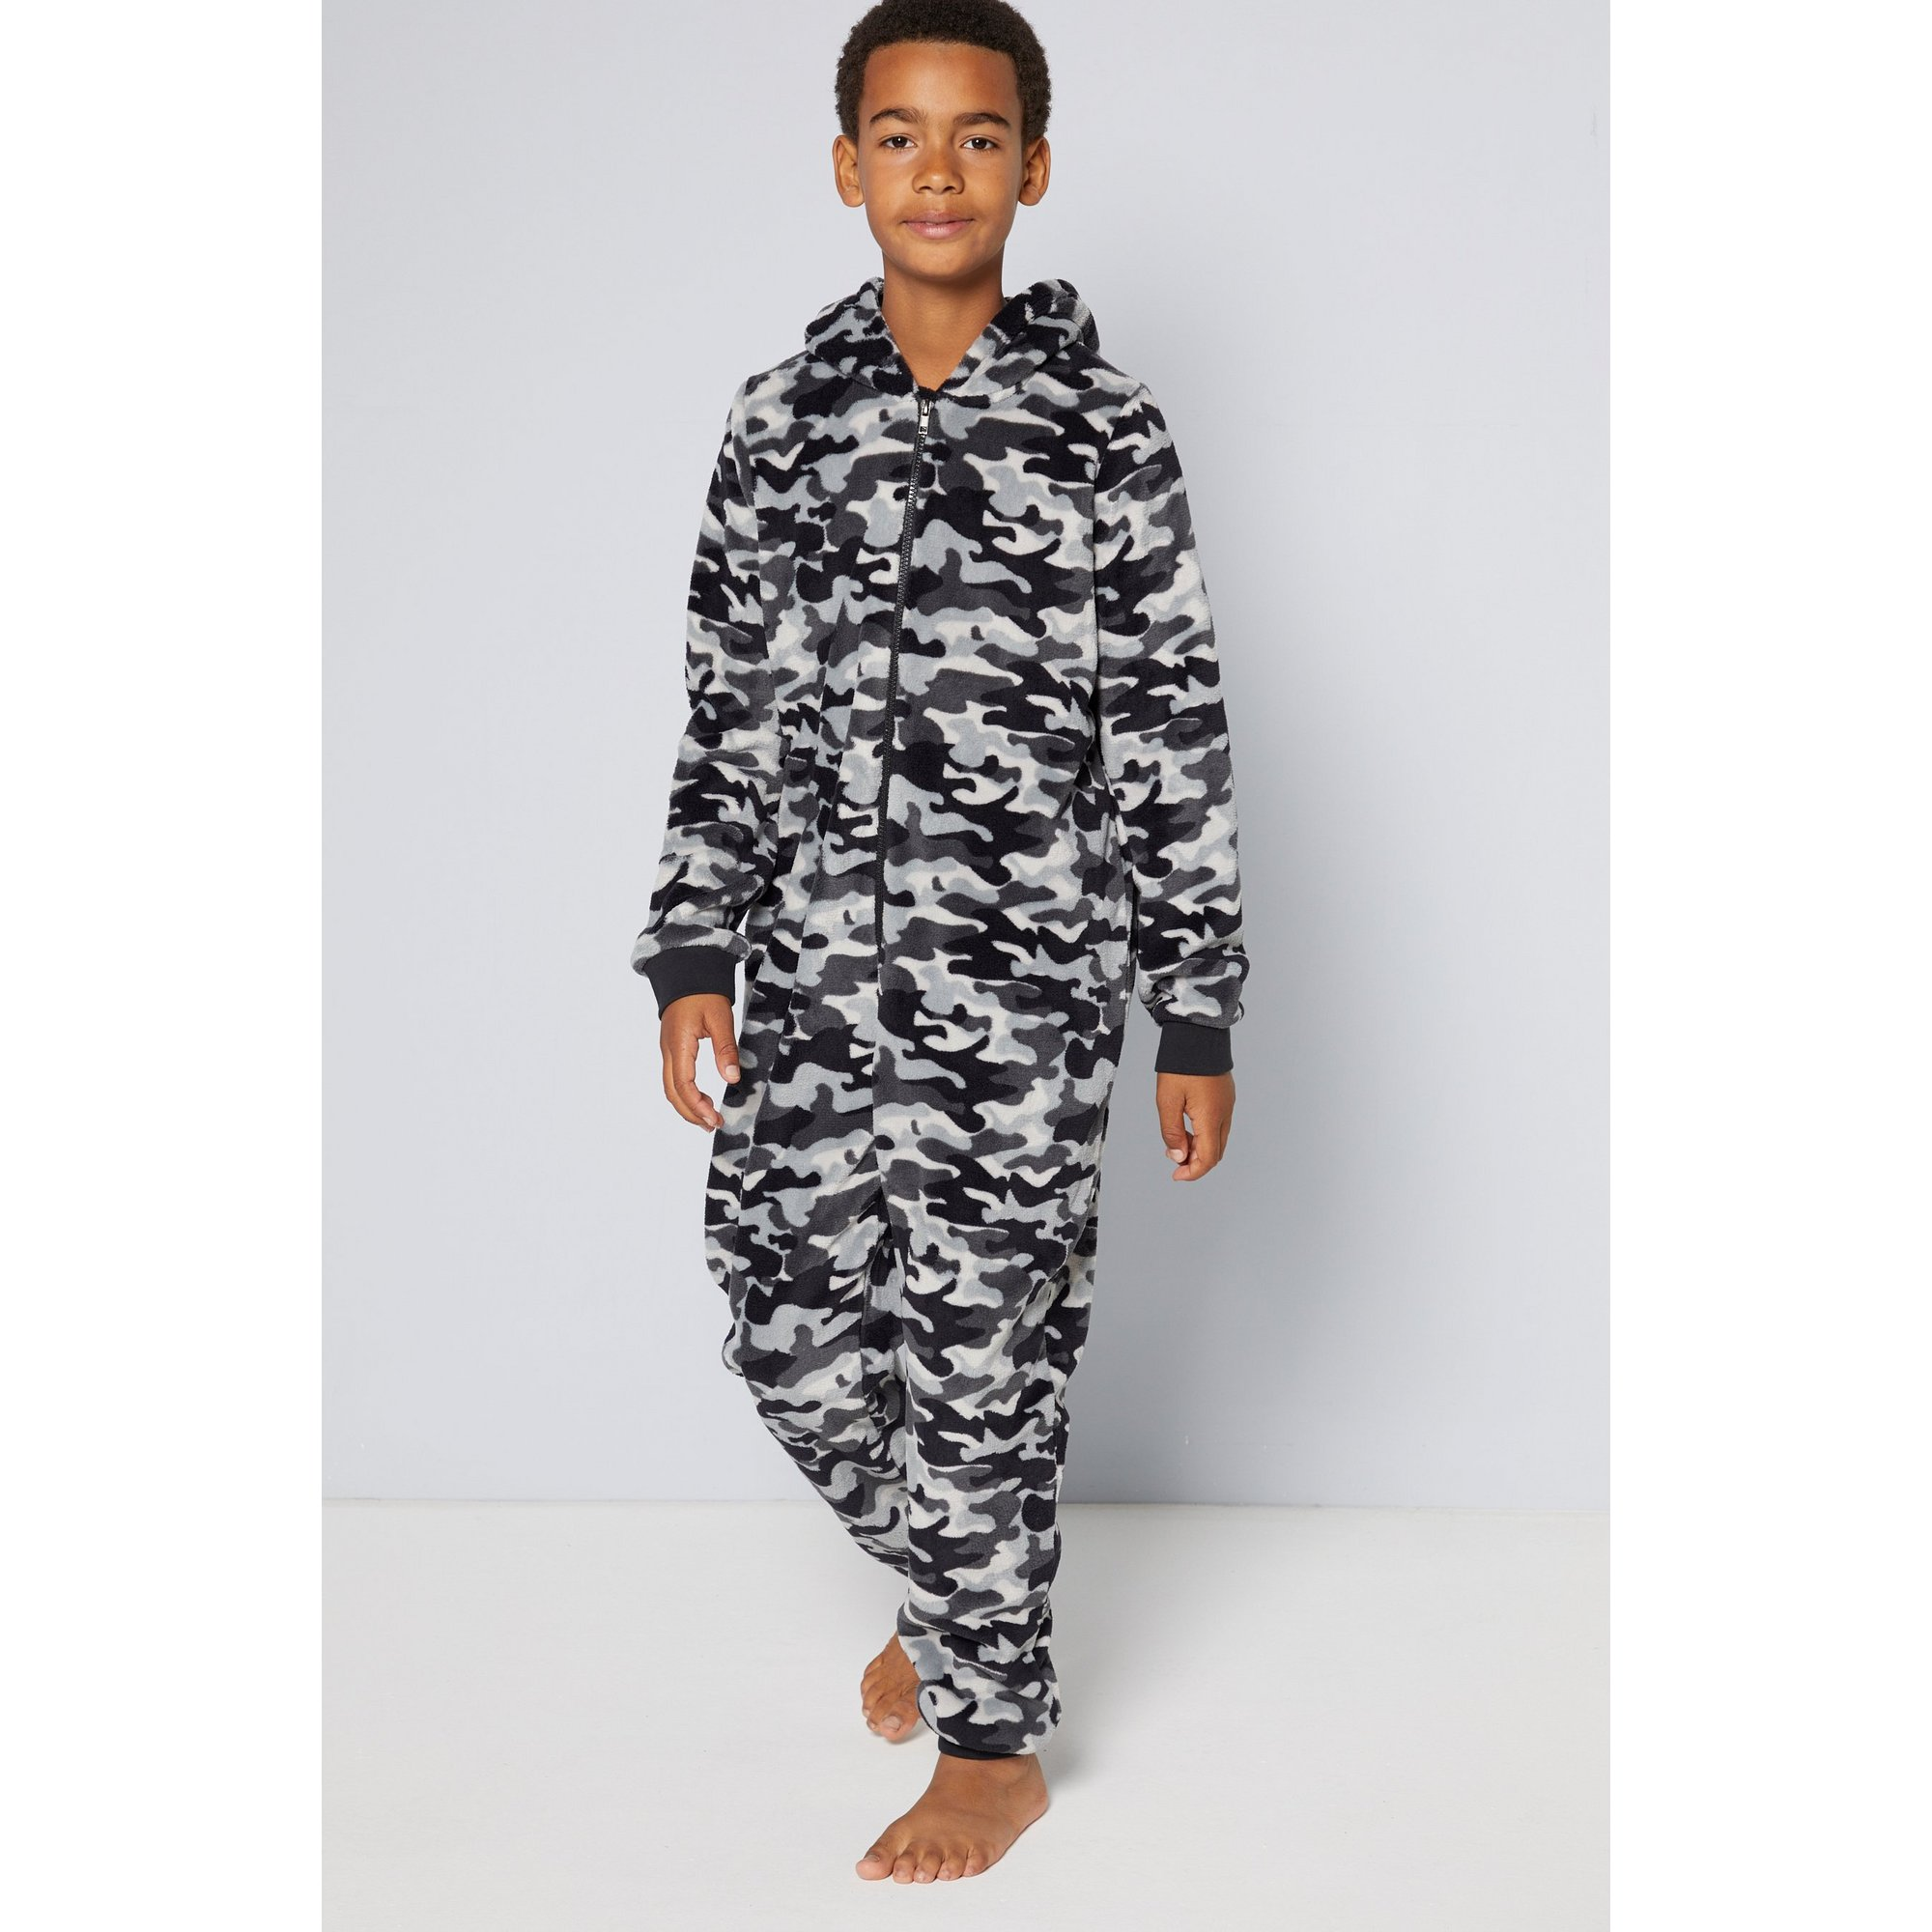 Image of Boys Hooded Mini Me Fleece Onesie